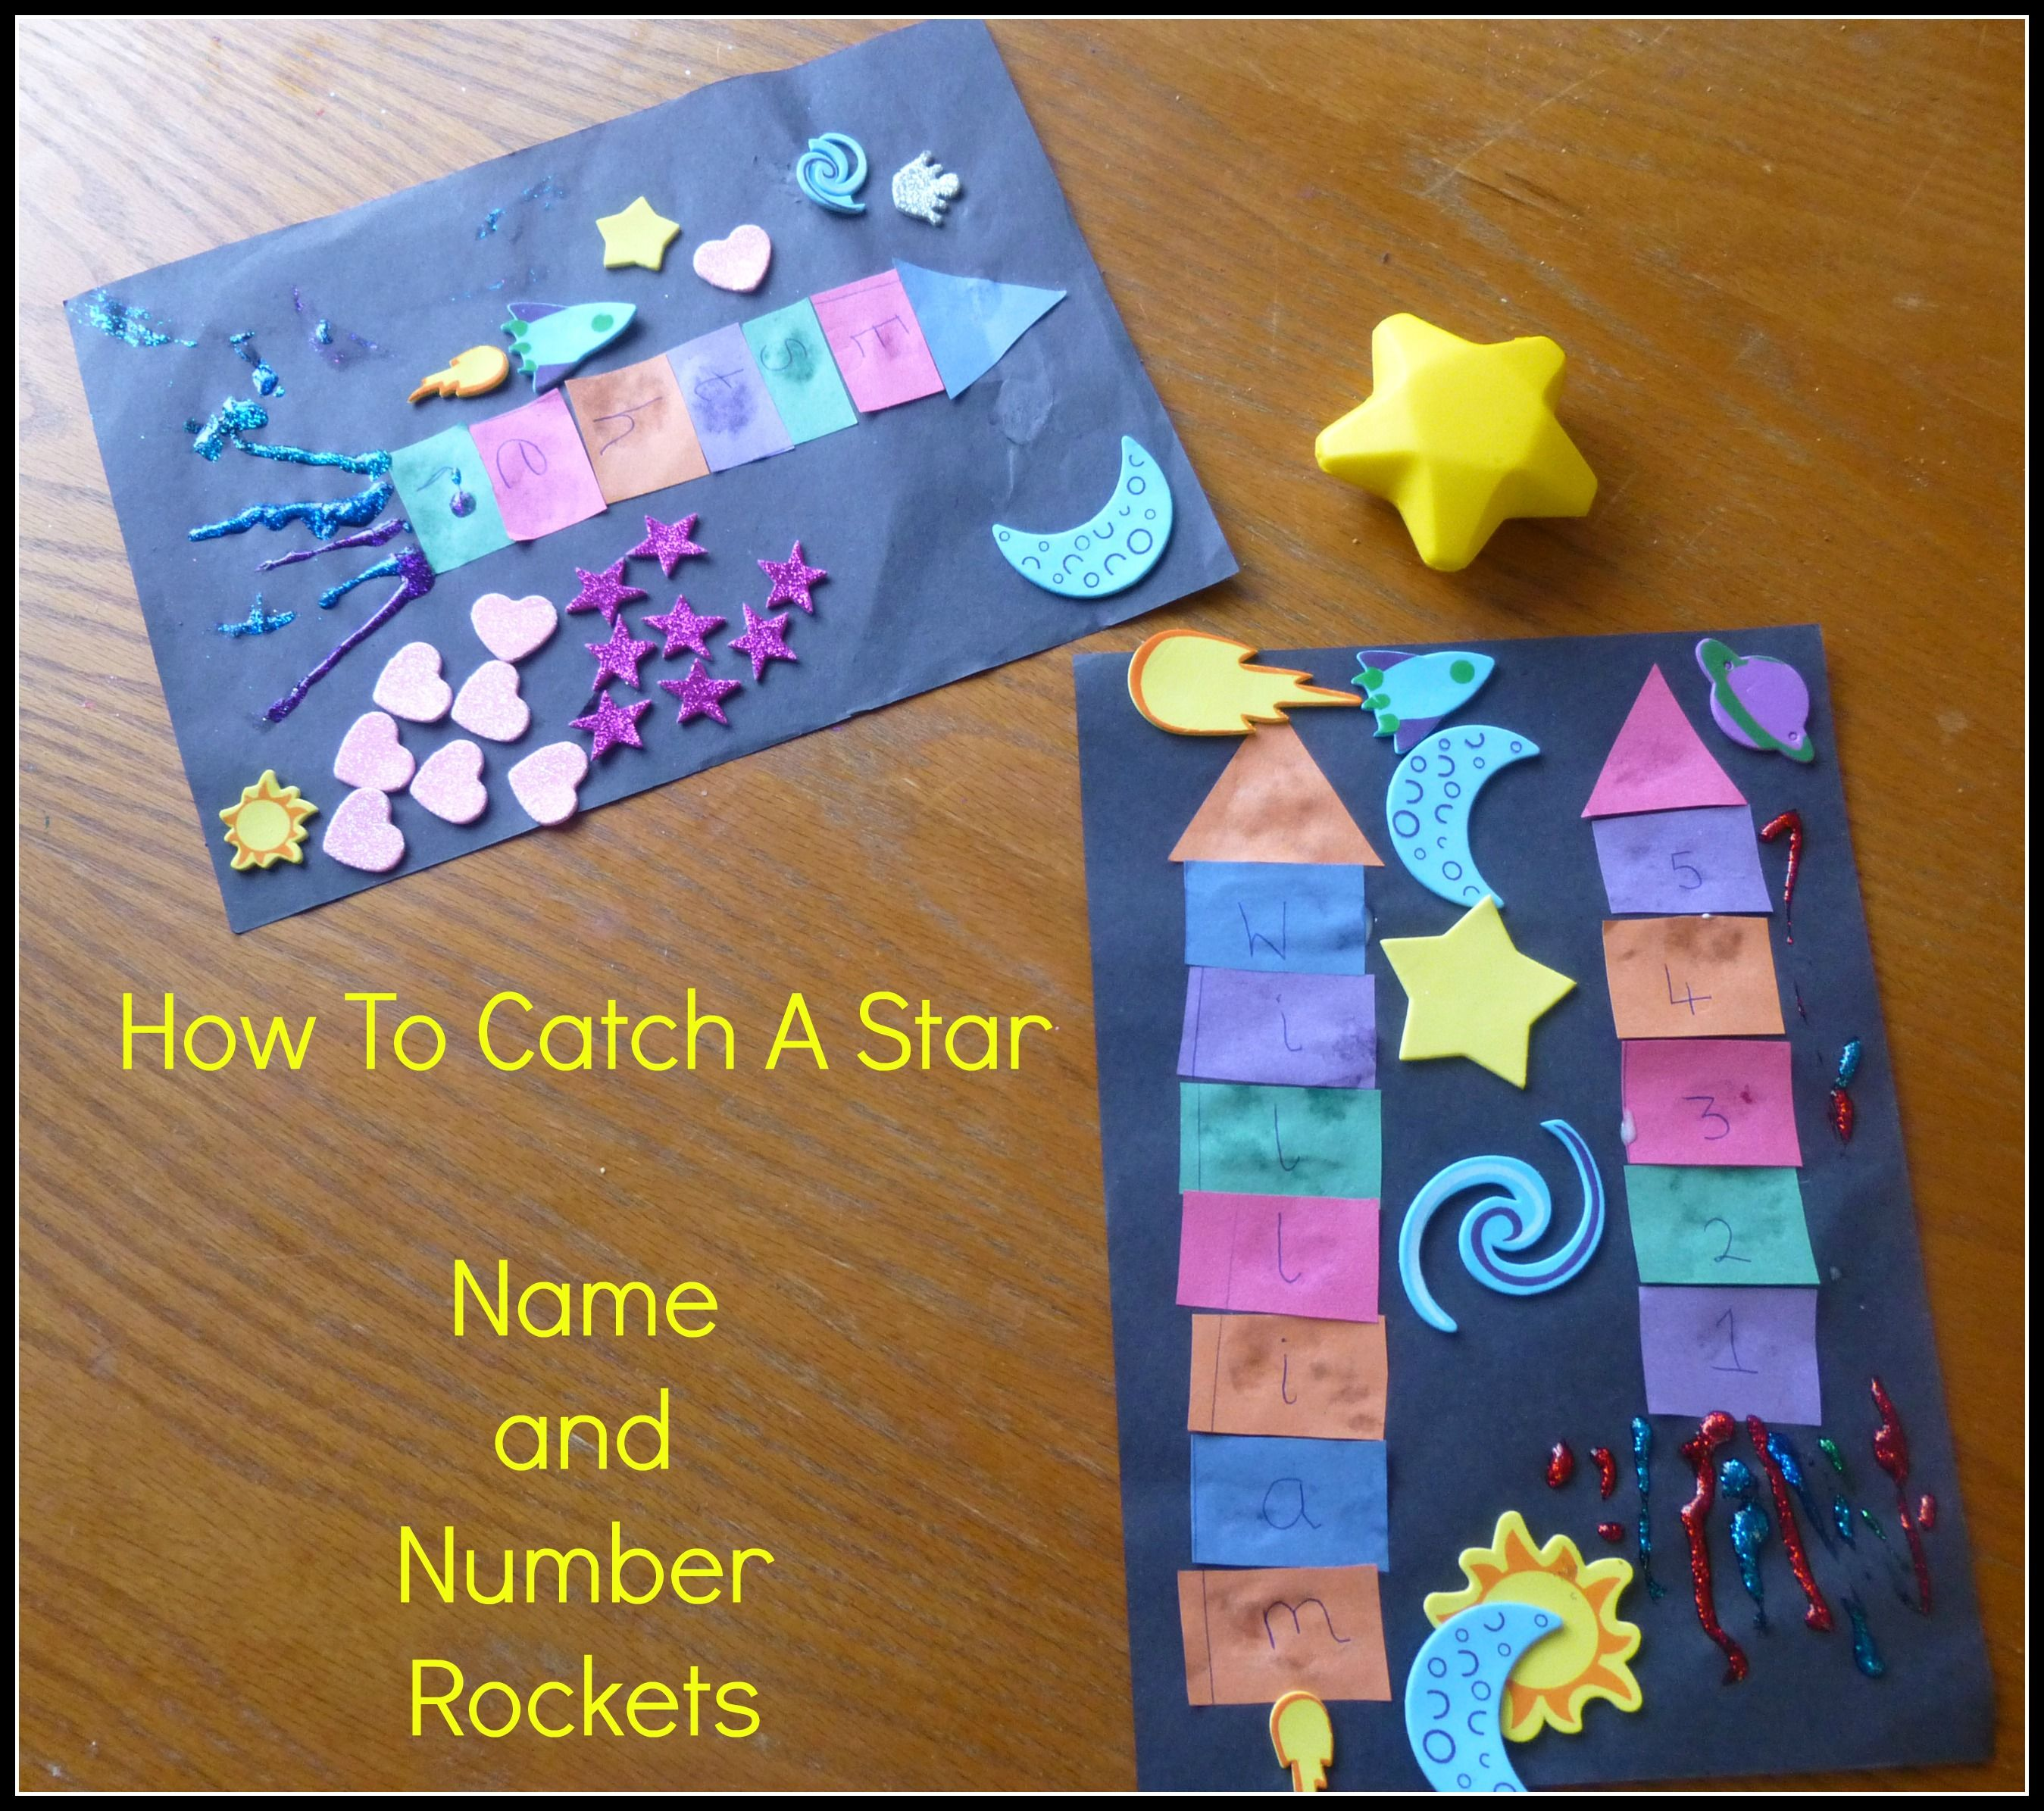 In the oliver jeffers story how to catch a star a little